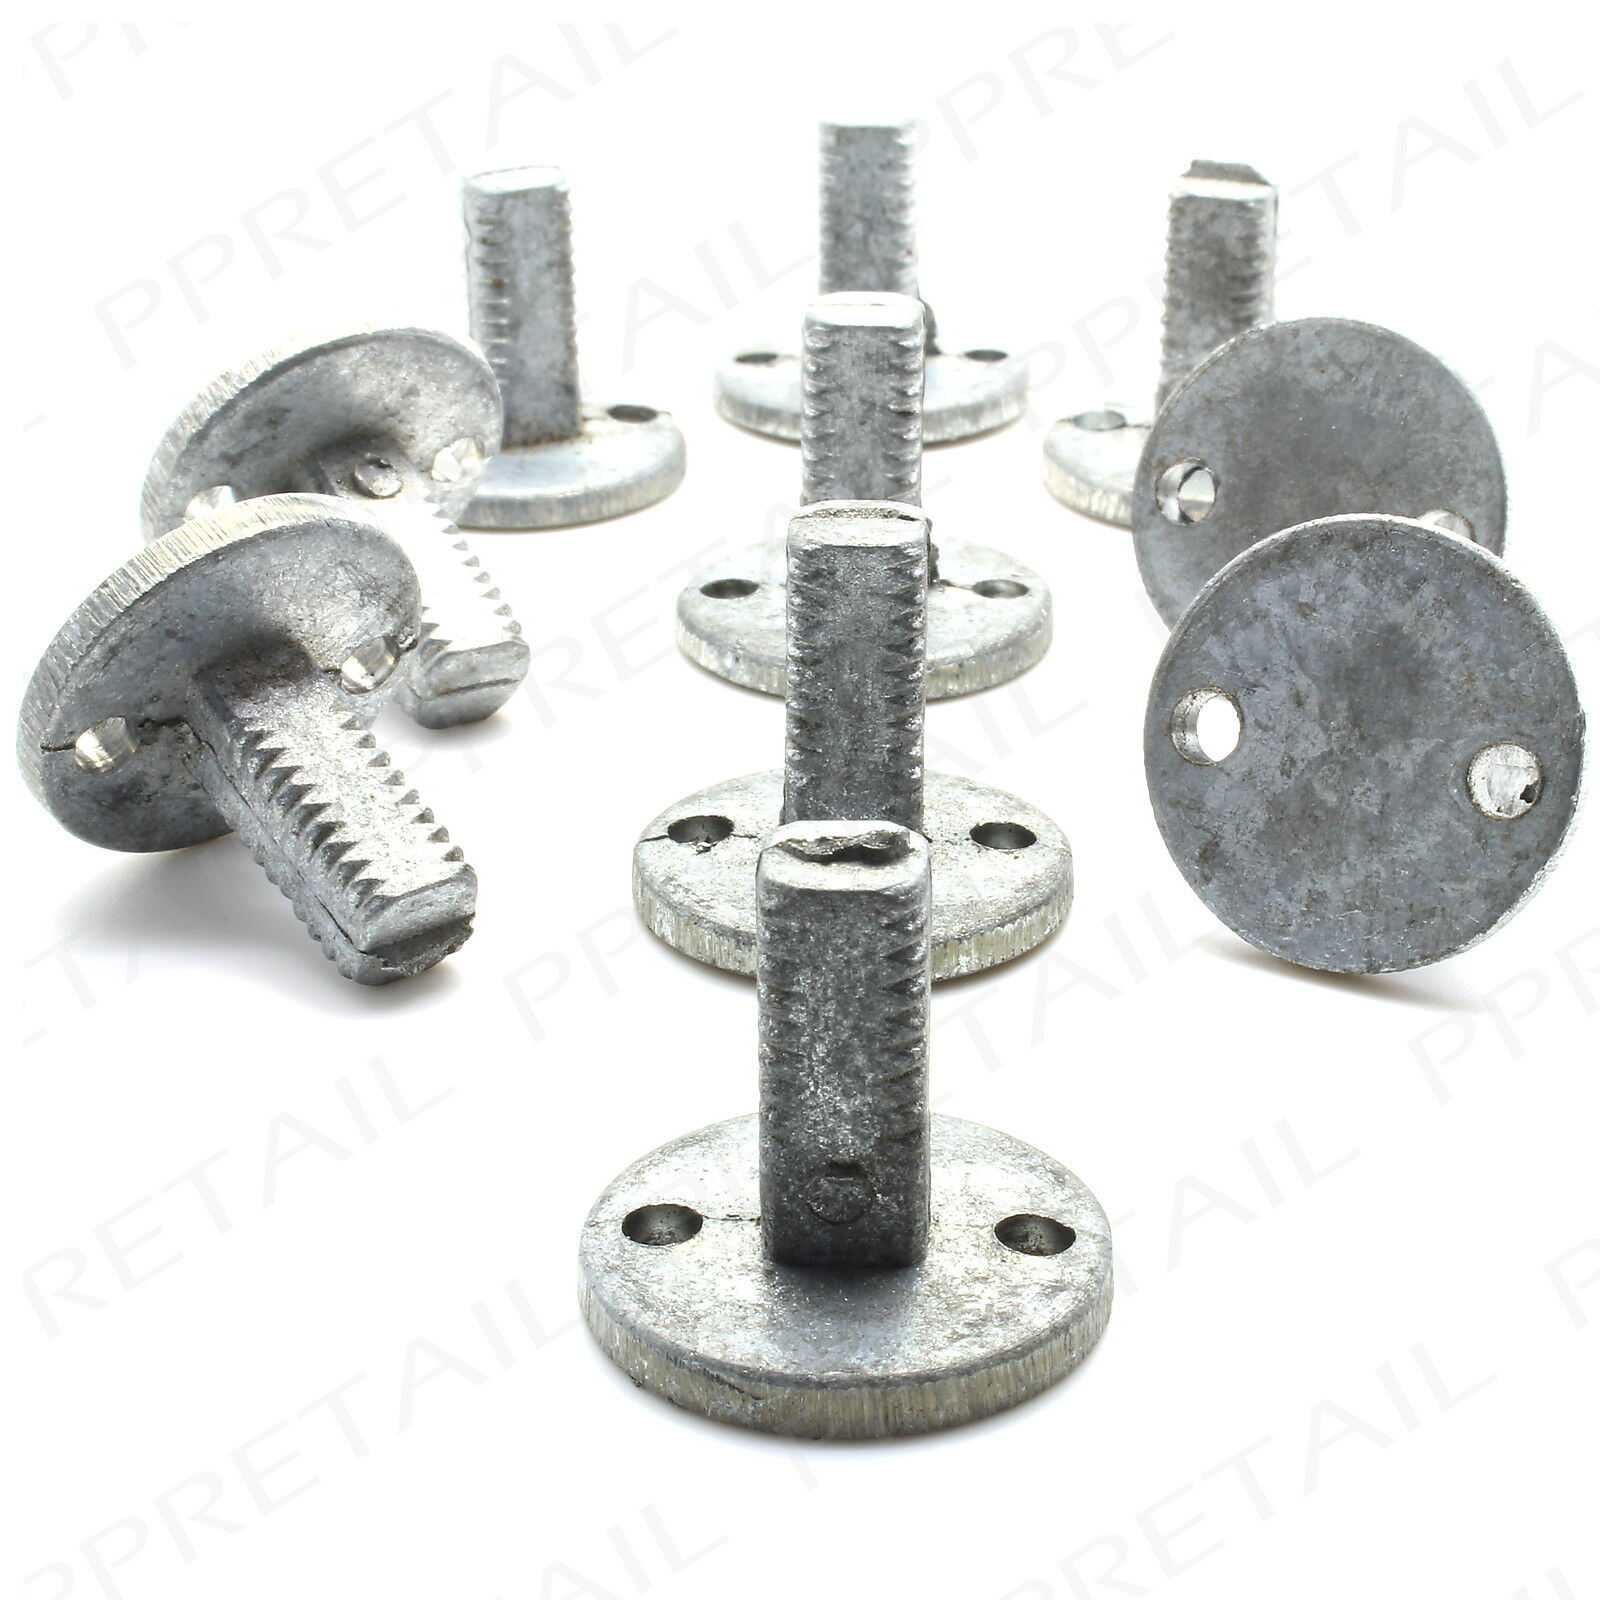 Picture of: 10 X Threaded Taylor Dummy Spindle To Fix Handle In Place Door Knob Push Pull For Sale Online Ebay